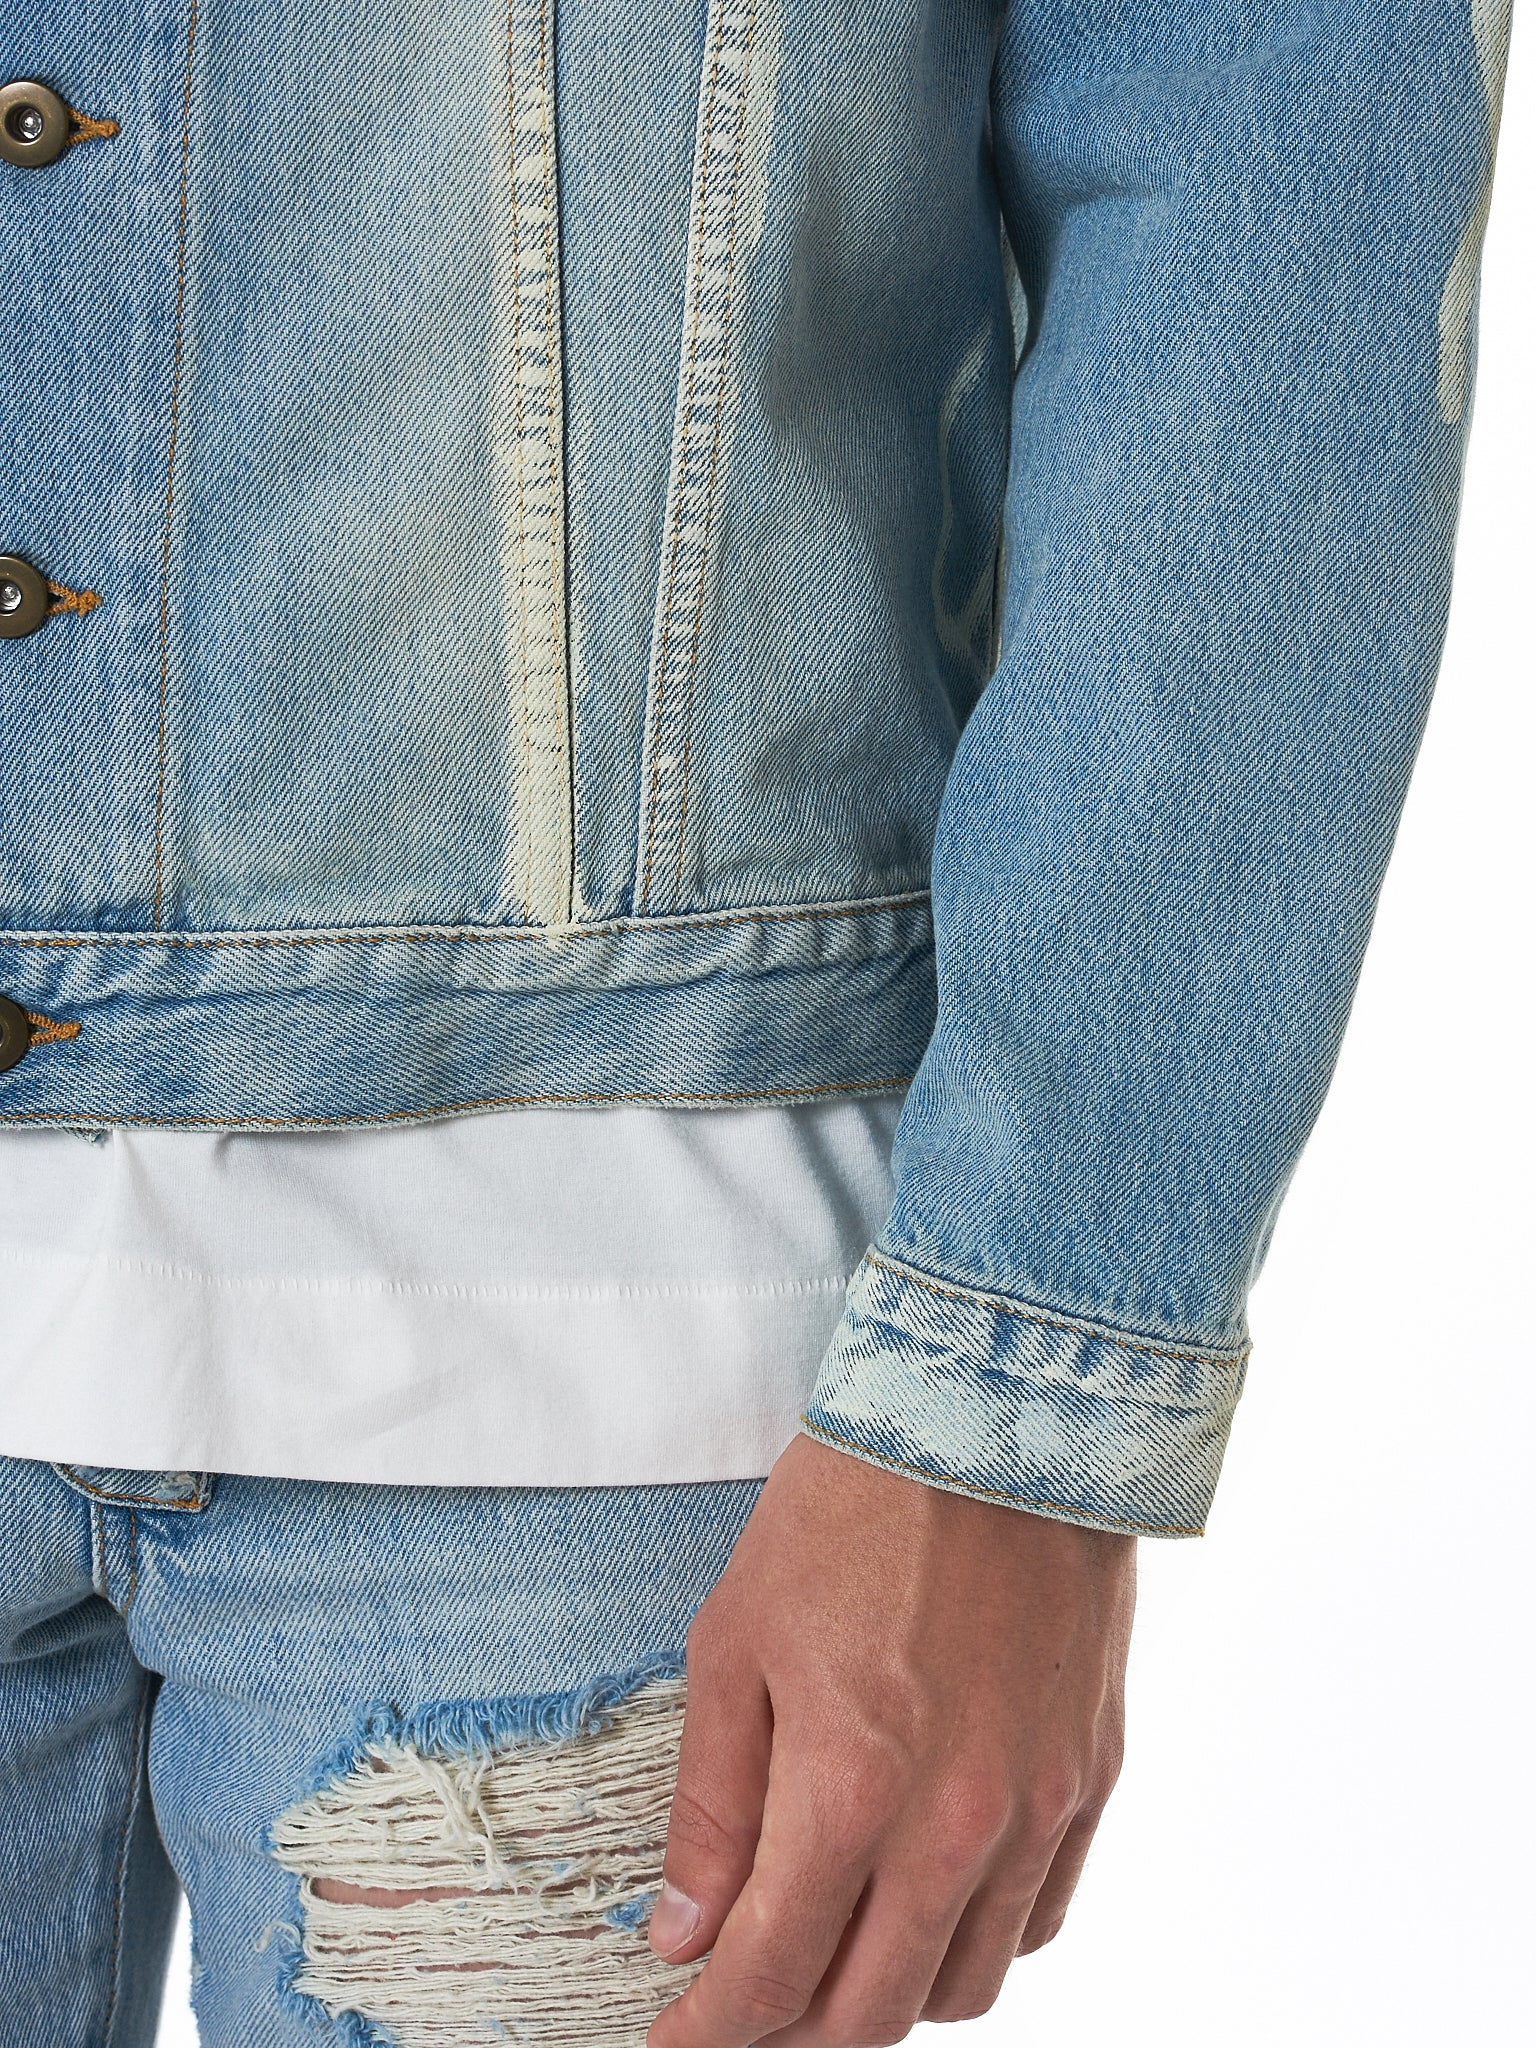 IH NOM UH NIT Denim Jacket - Hlorenzo Detail 4